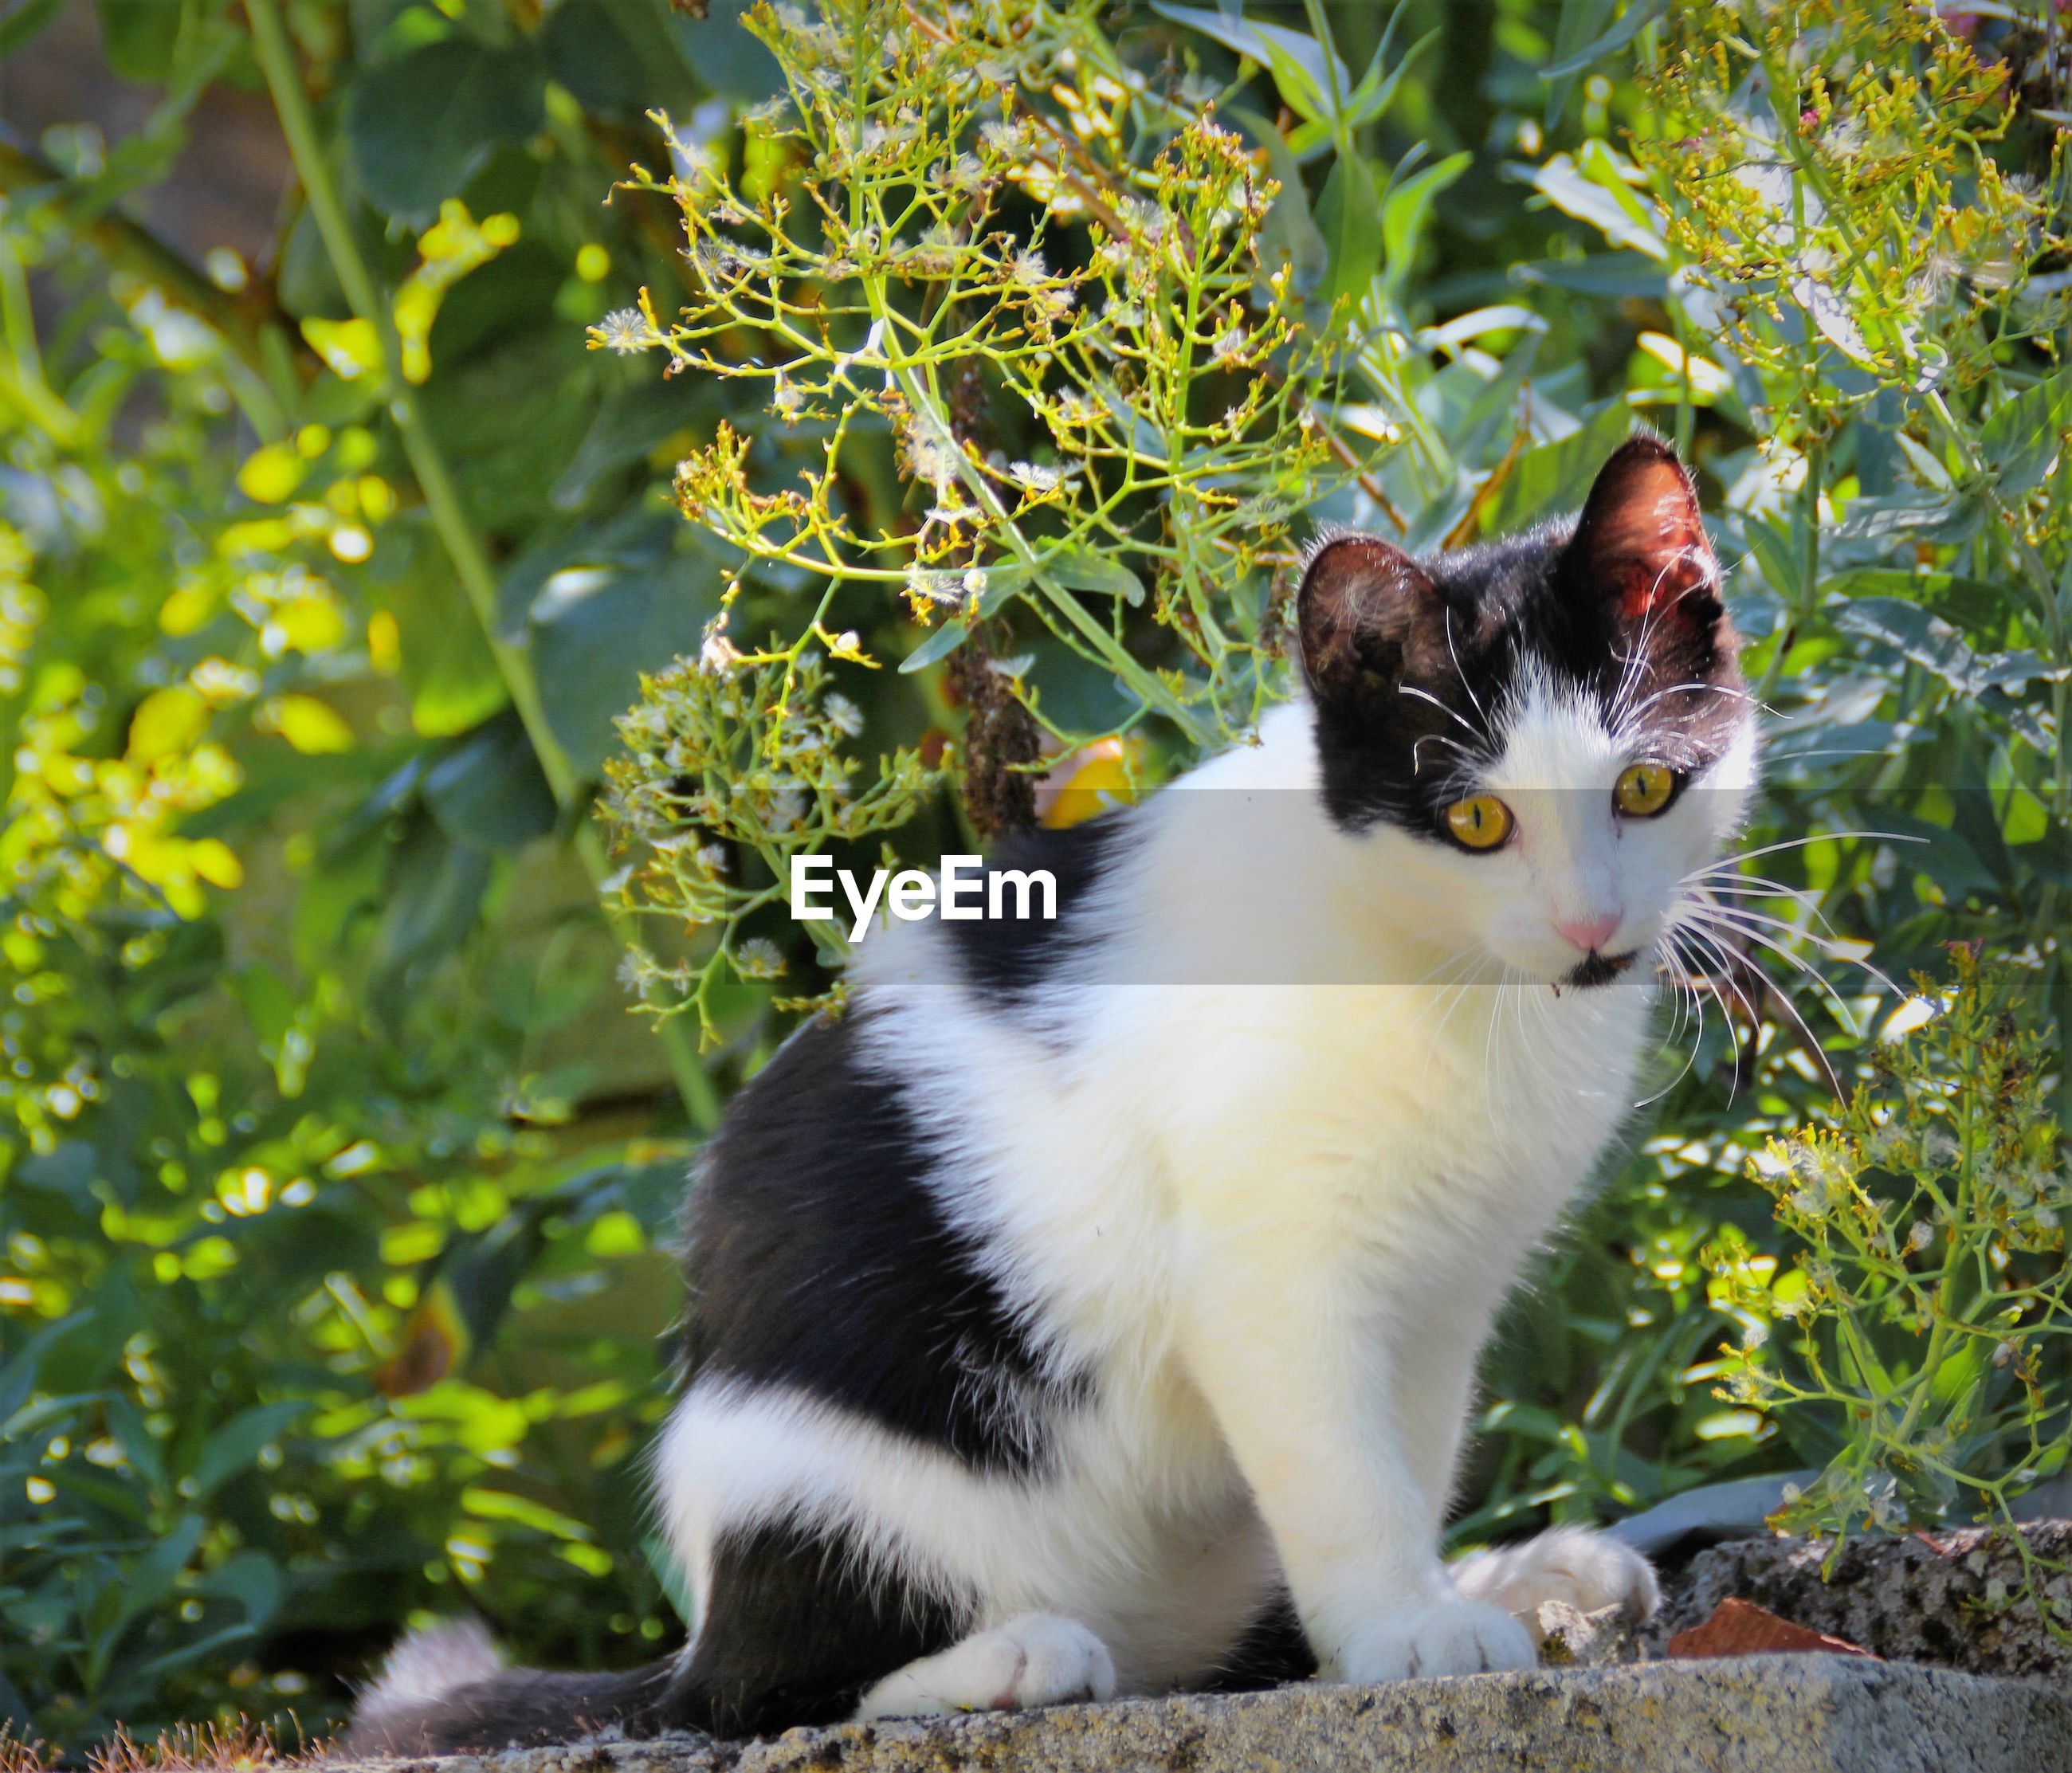 Portrait of cat sitting on retaining wall by plants